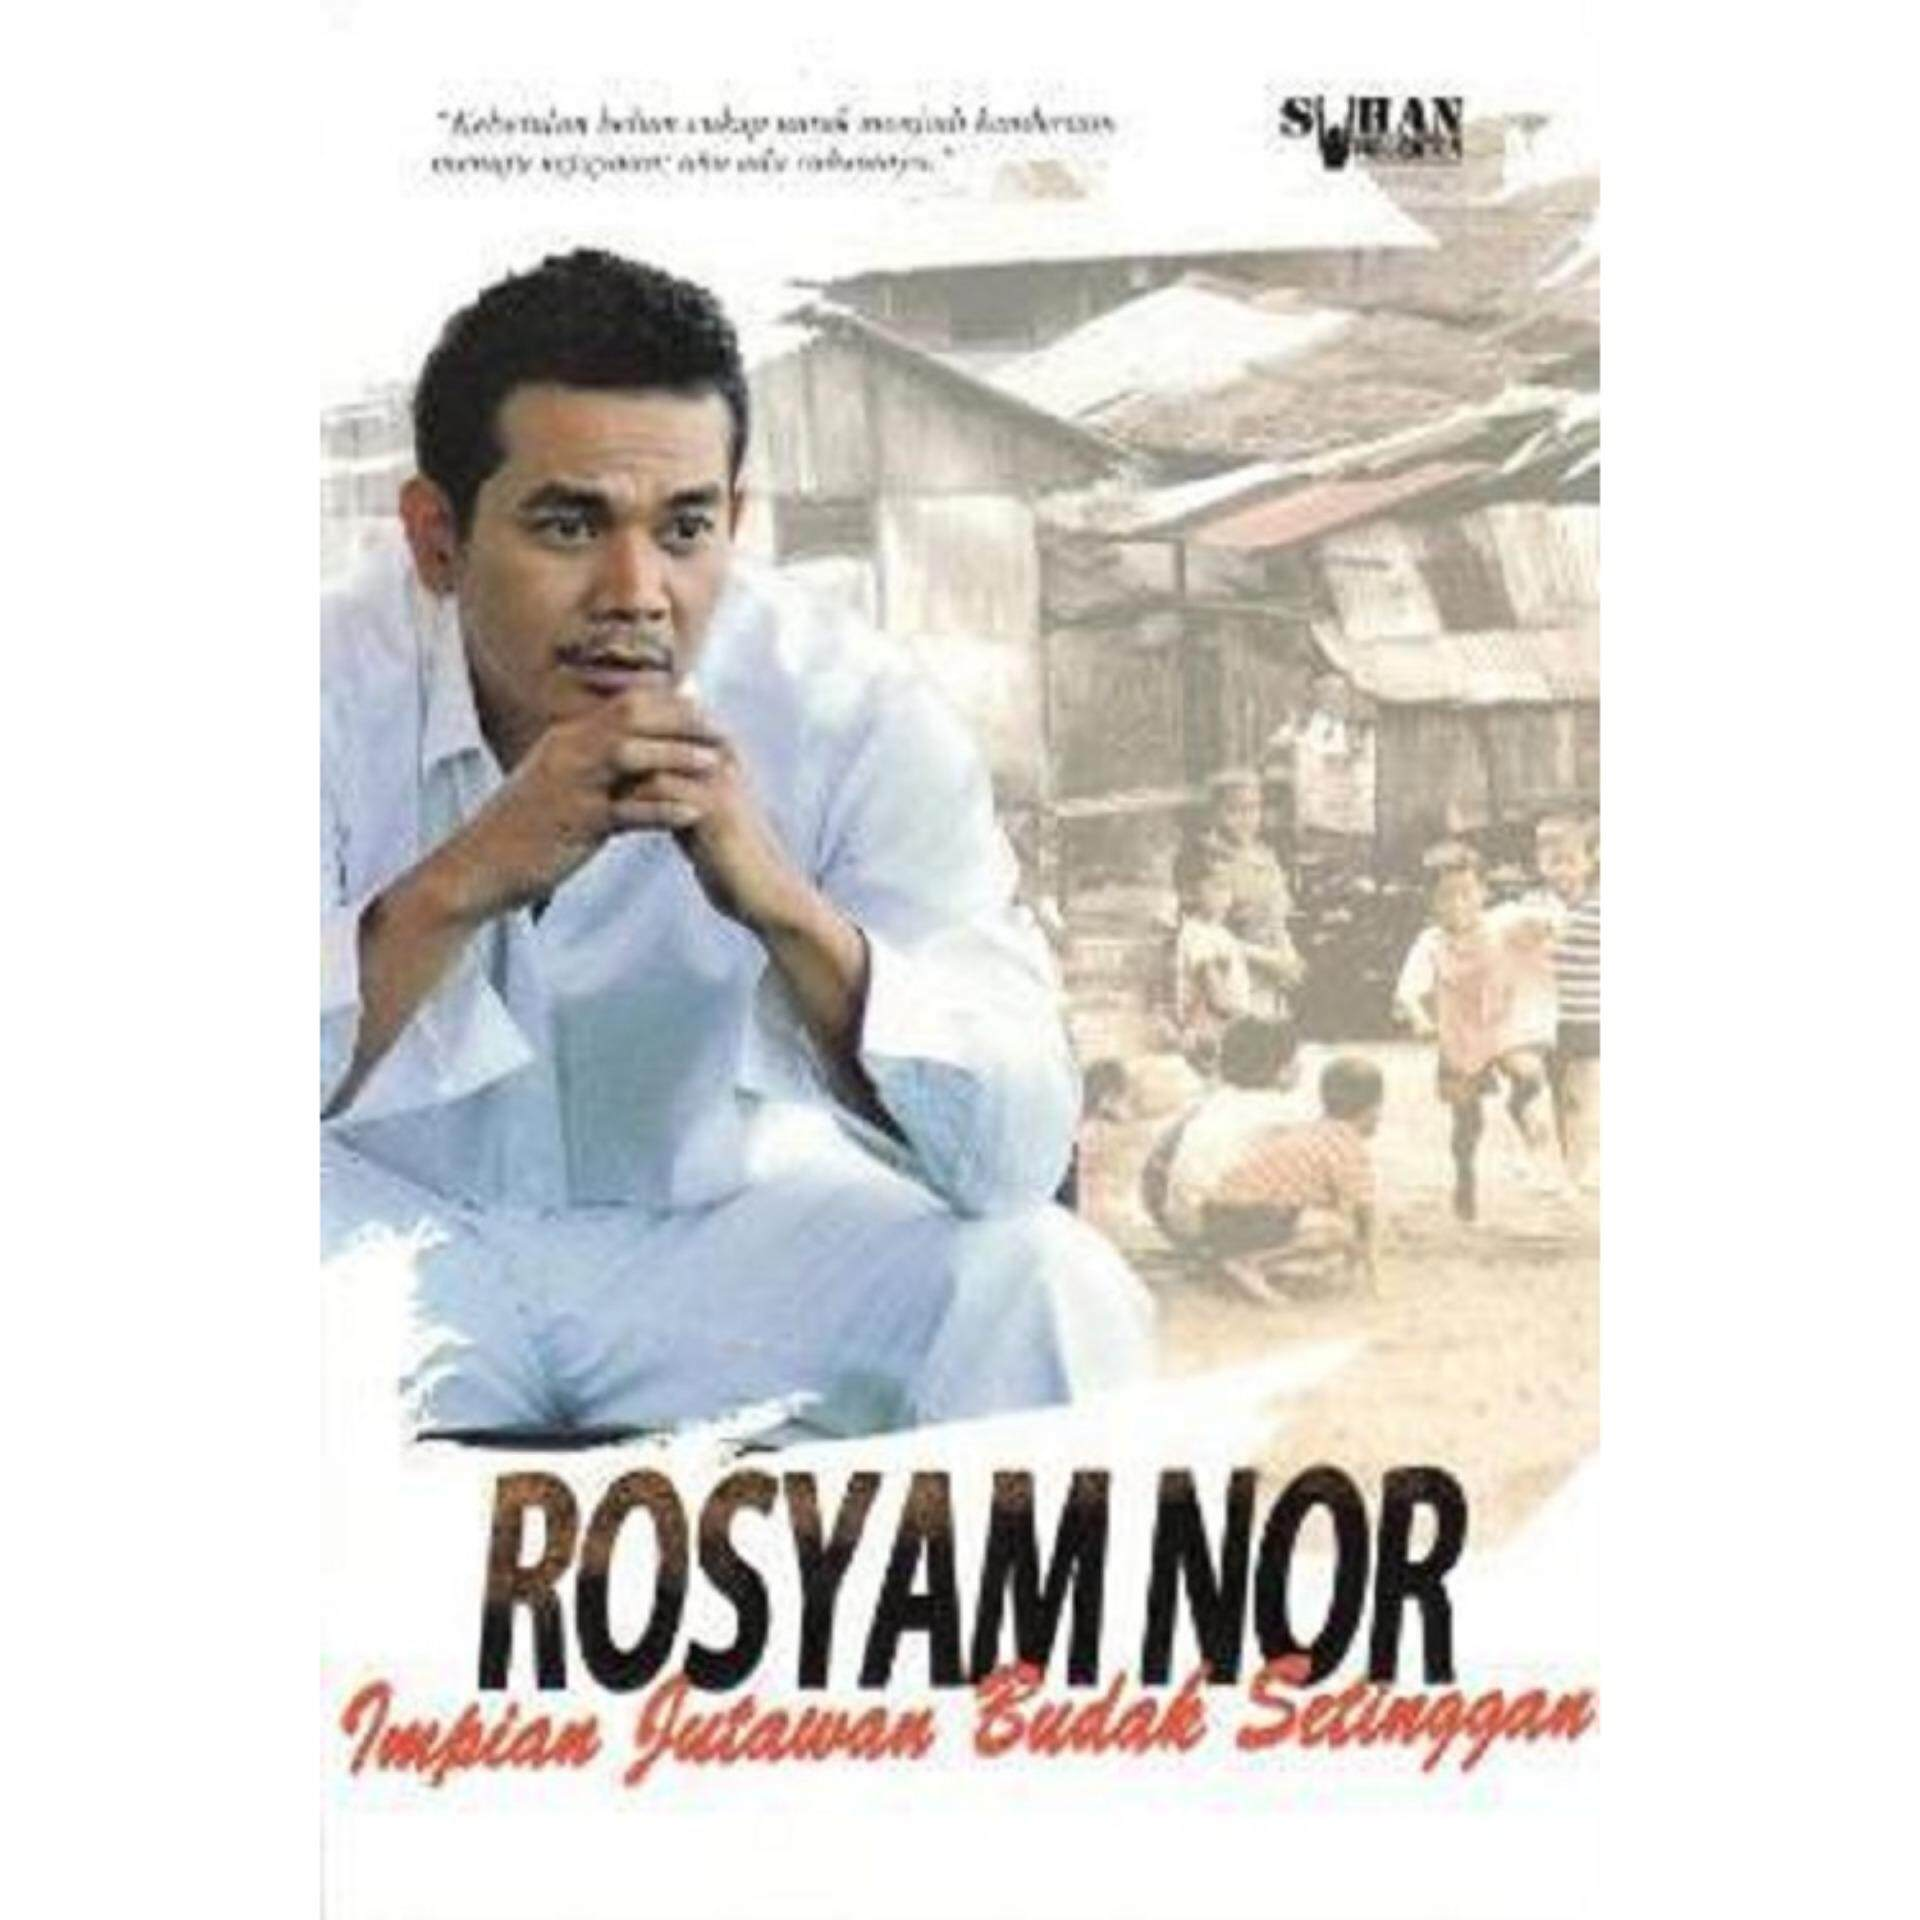 Rosyam Nor: Impian Jutawan Budak Setinggan Isbn : 9789671405505 Author : Rosyam Nor By Mph Bookstores.